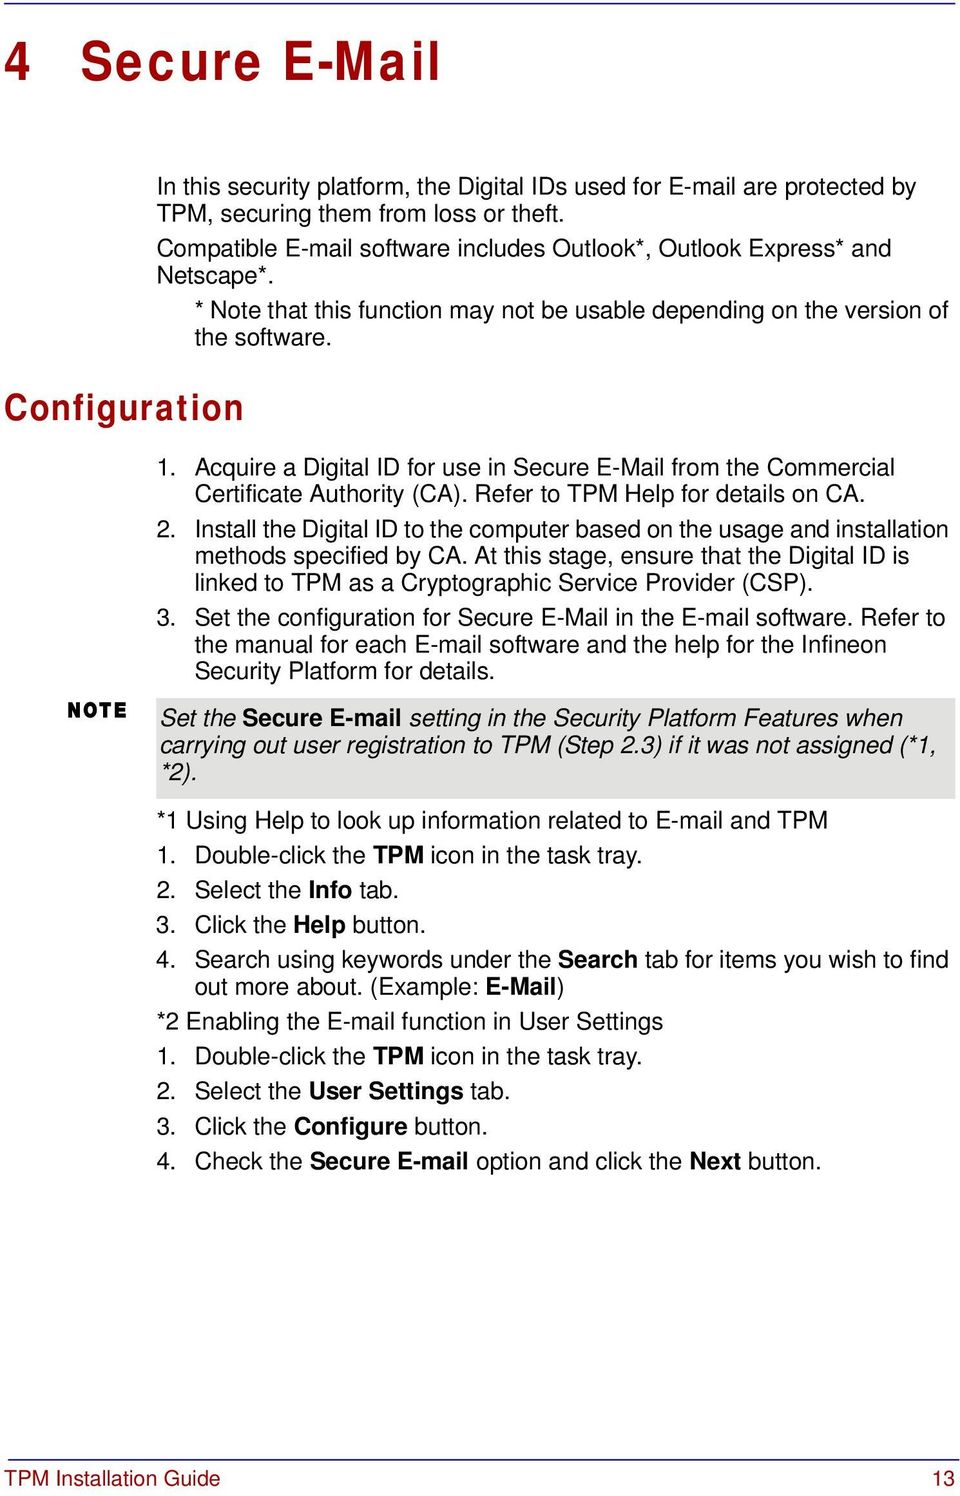 Acquire a Digital ID for use in Secure E-Mail from the Commercial Certificate Authority (CA). Refer to TPM Help for details on CA. 2.